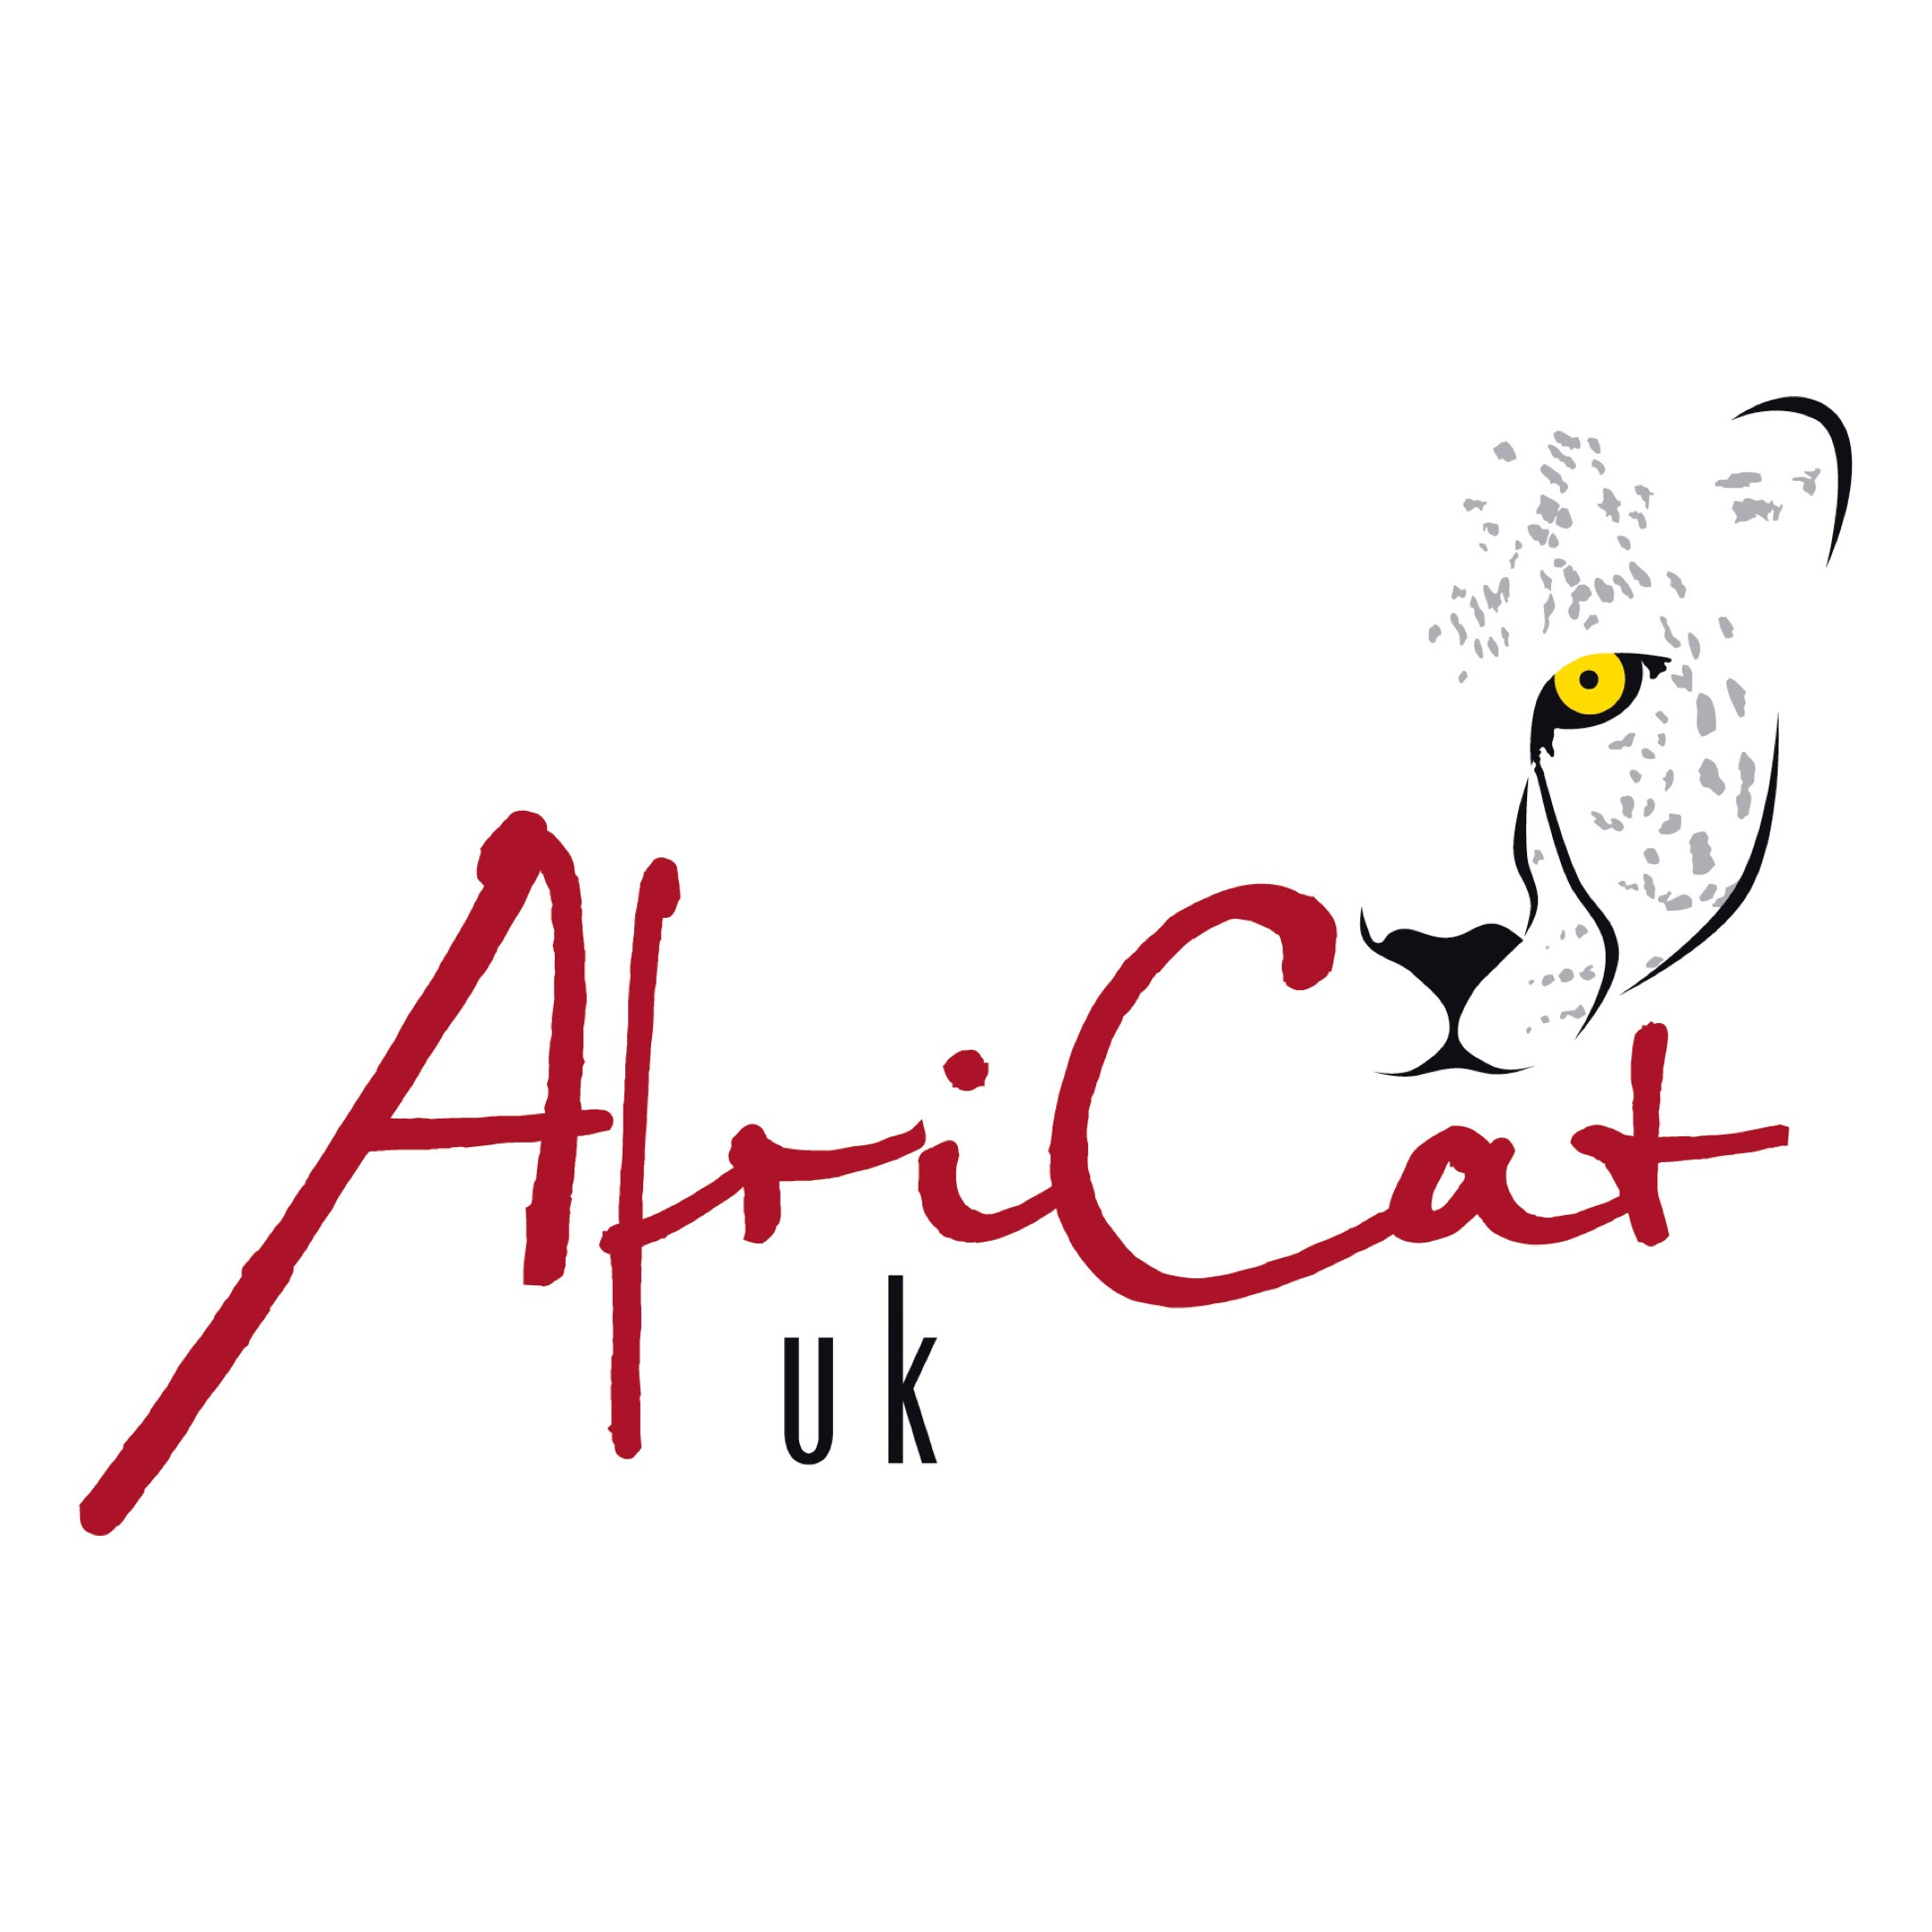 AfriCat UK - 25% of net profits donated to AfriCat UK